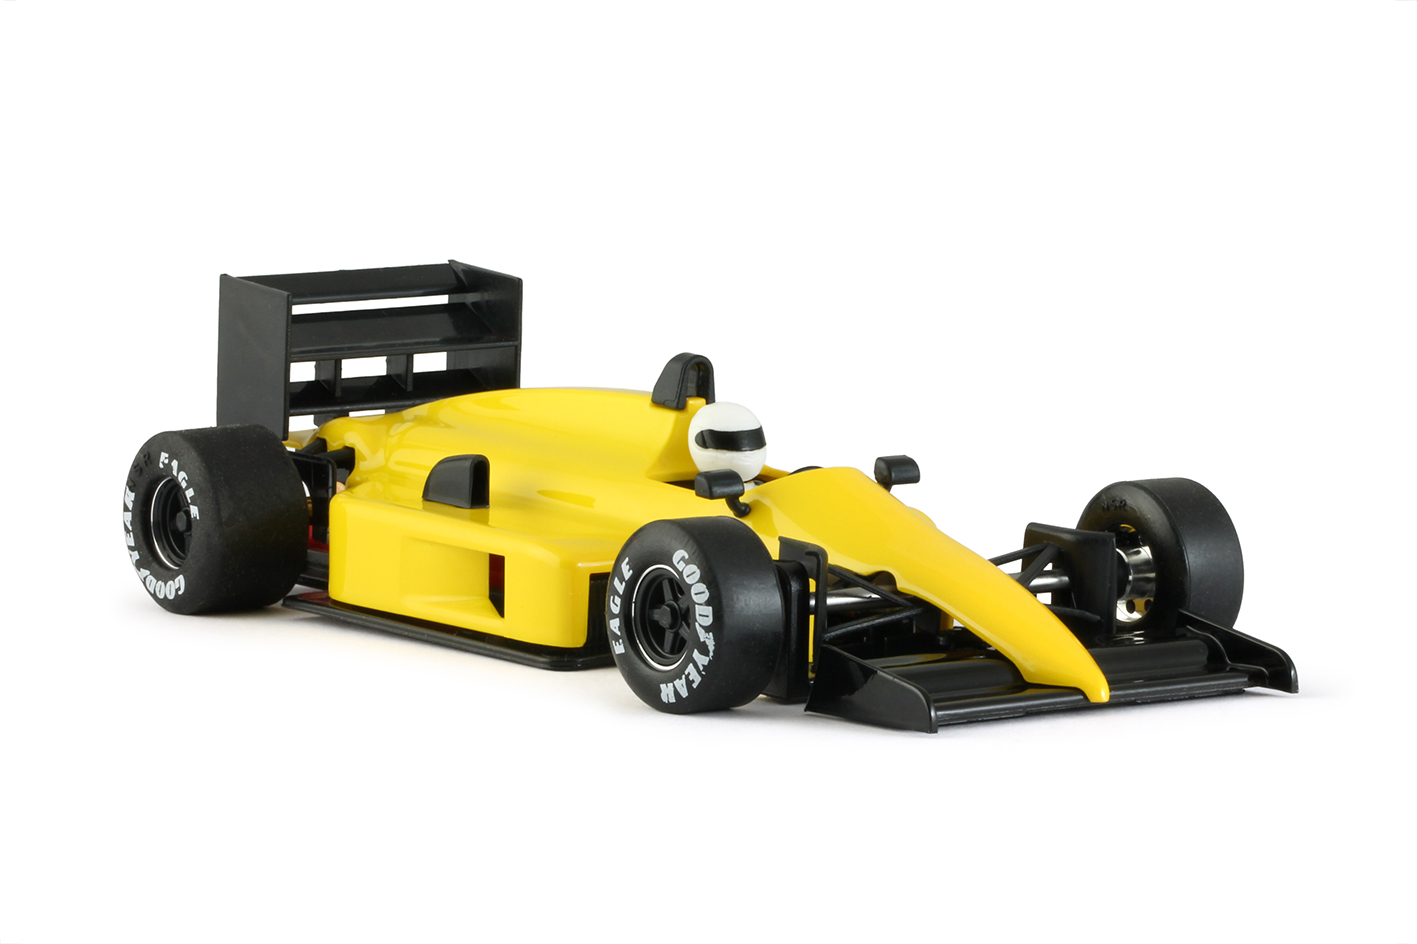 NSR0119IL NSR Formula 86/89 Yellow Test Car